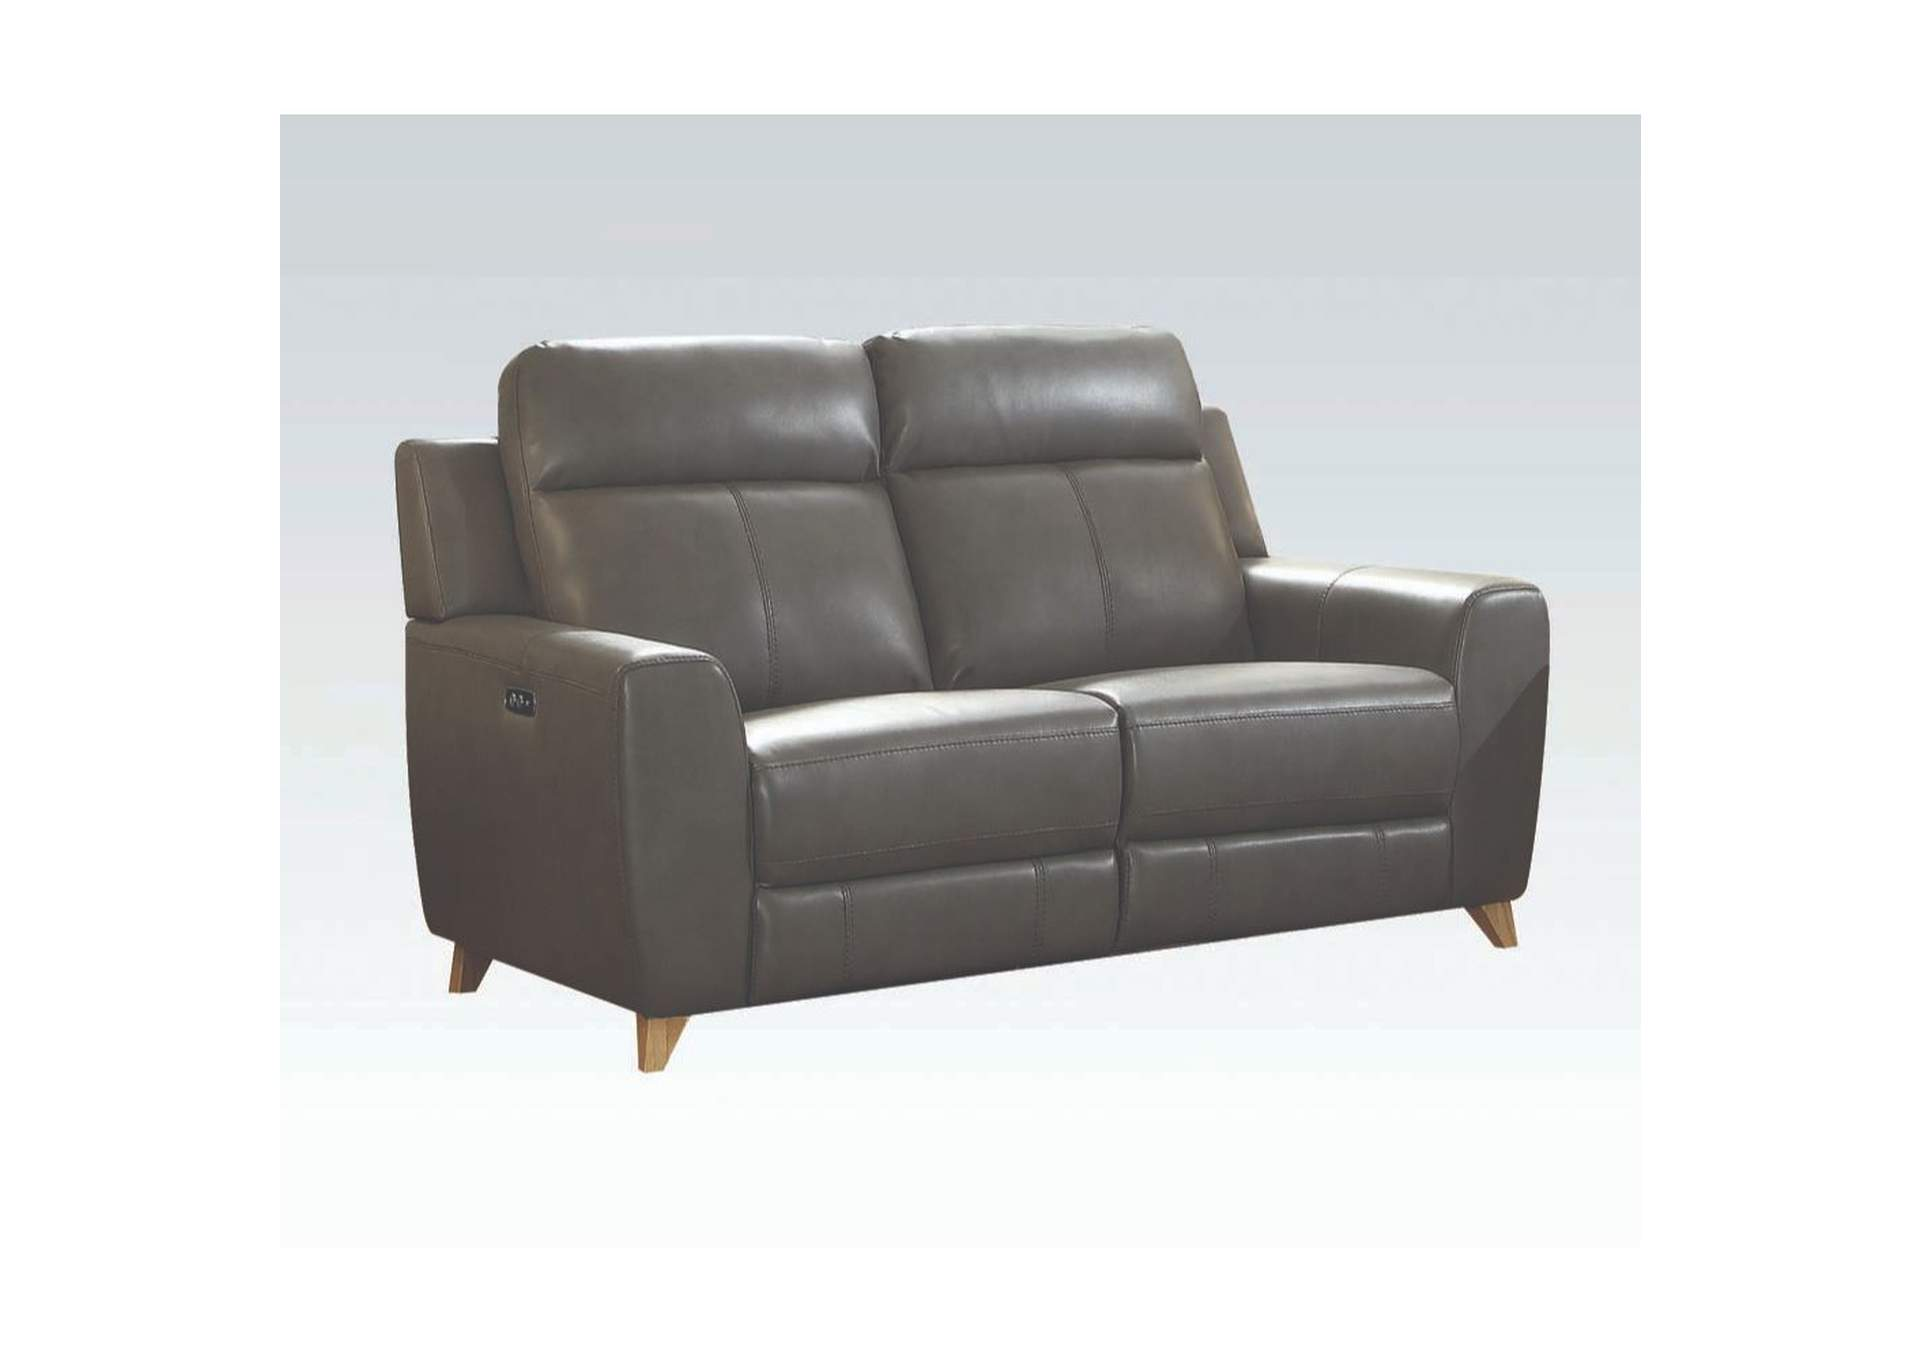 Cayden Gray Leather-Aire Match Loveseat,Acme